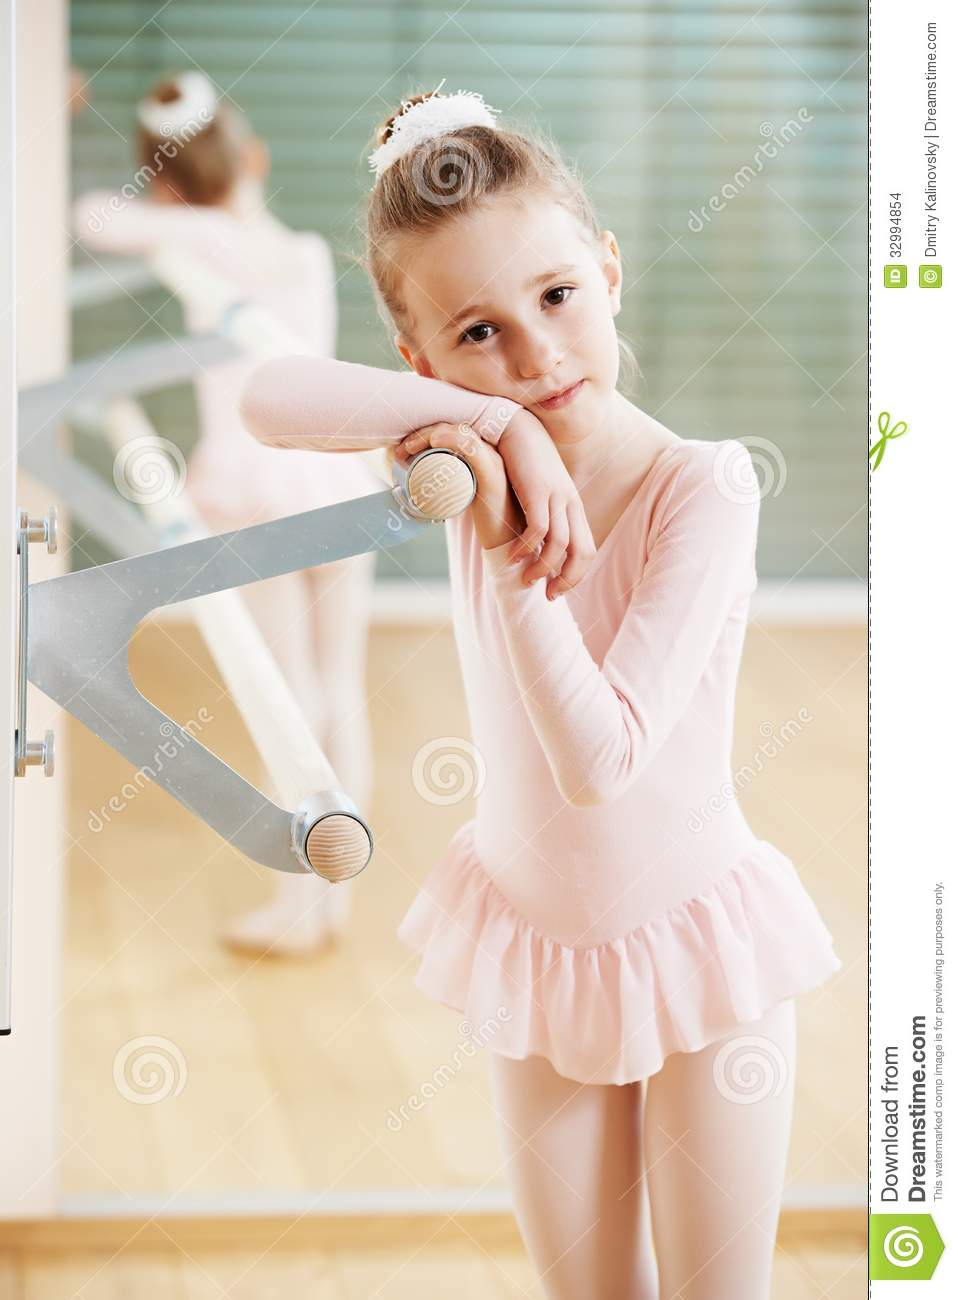 Little girl in ballet suit at training exercise in front of mirror.